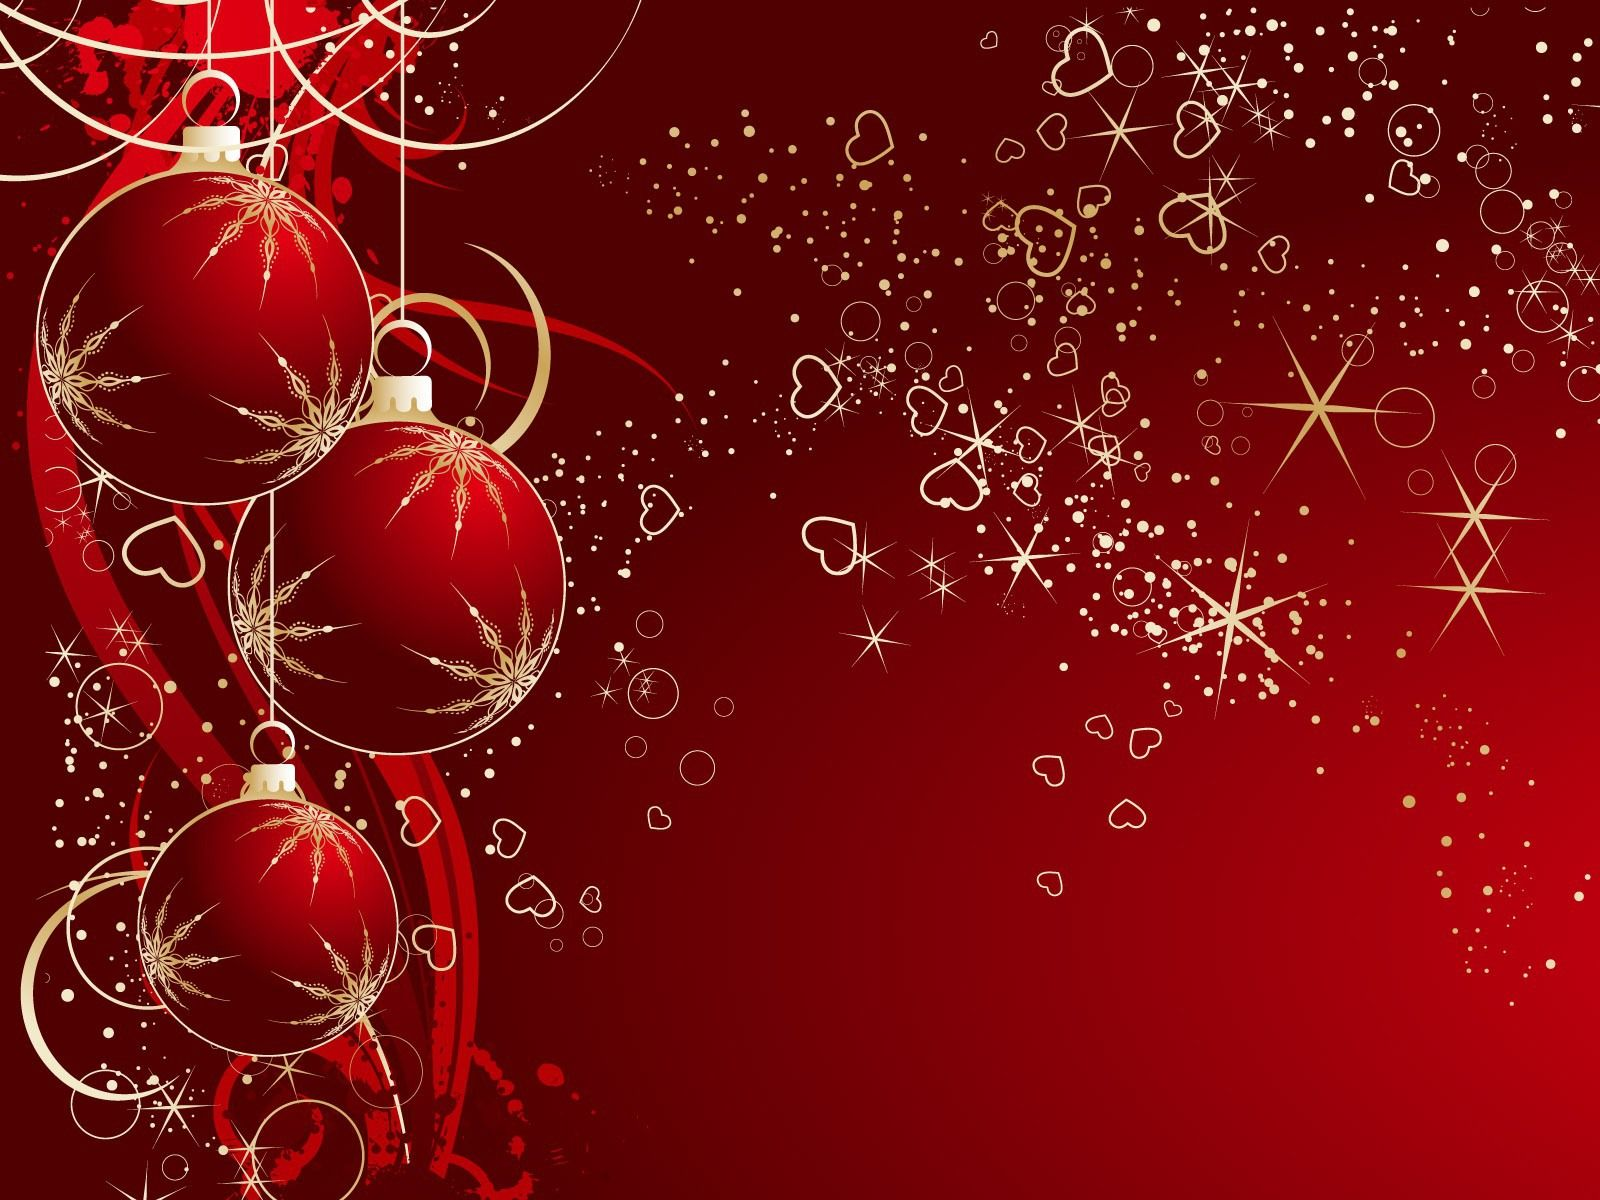 red christmas toys ipad wallpaper hd free download background theme